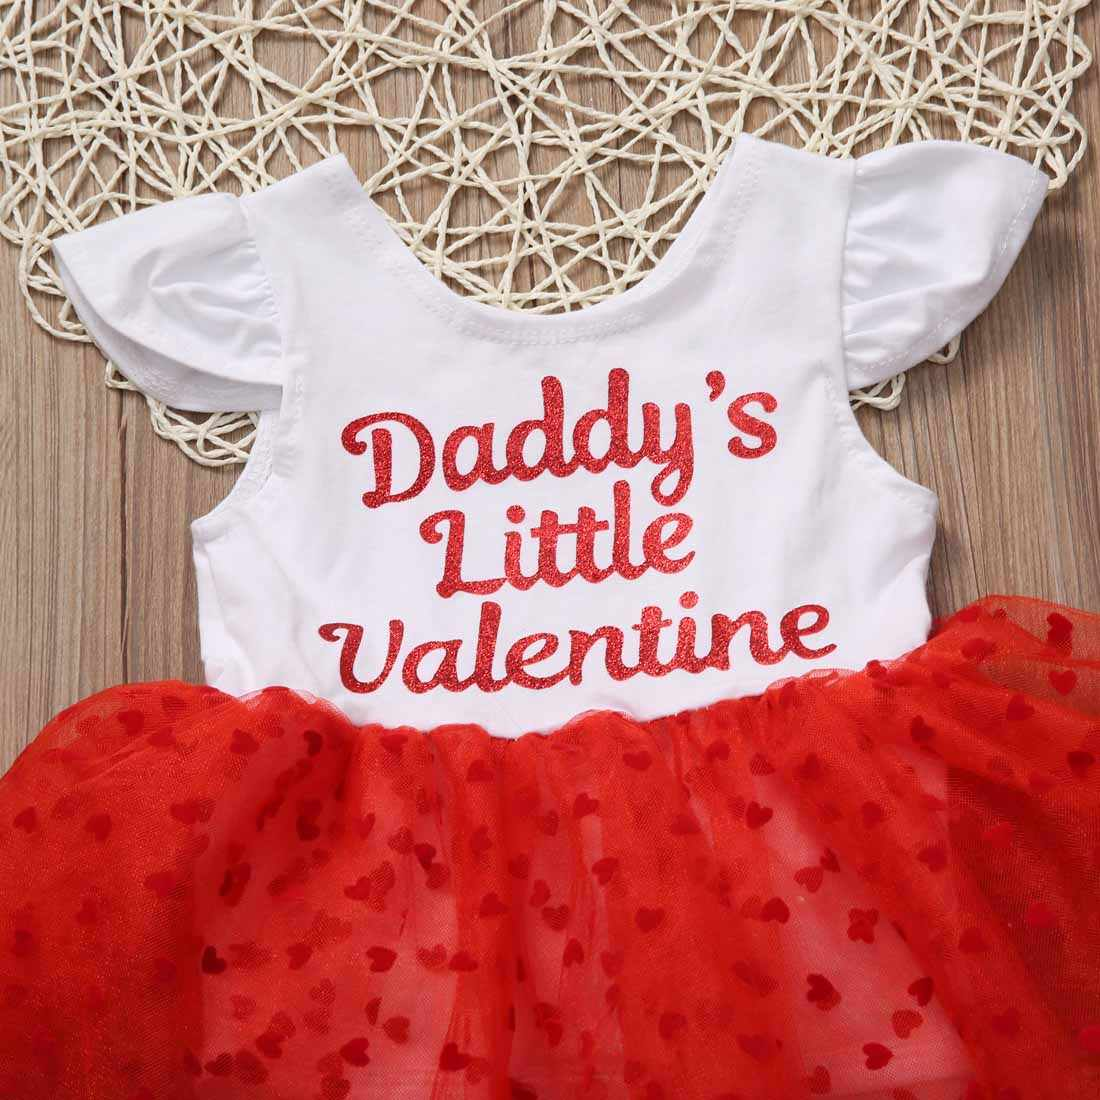 1f4aaa9f2 ... Lovely Infant Baby Girls Daddy's Little Valentine Dresses Heart Tulle  Gown Party Tutu Cake Romper Dress ...